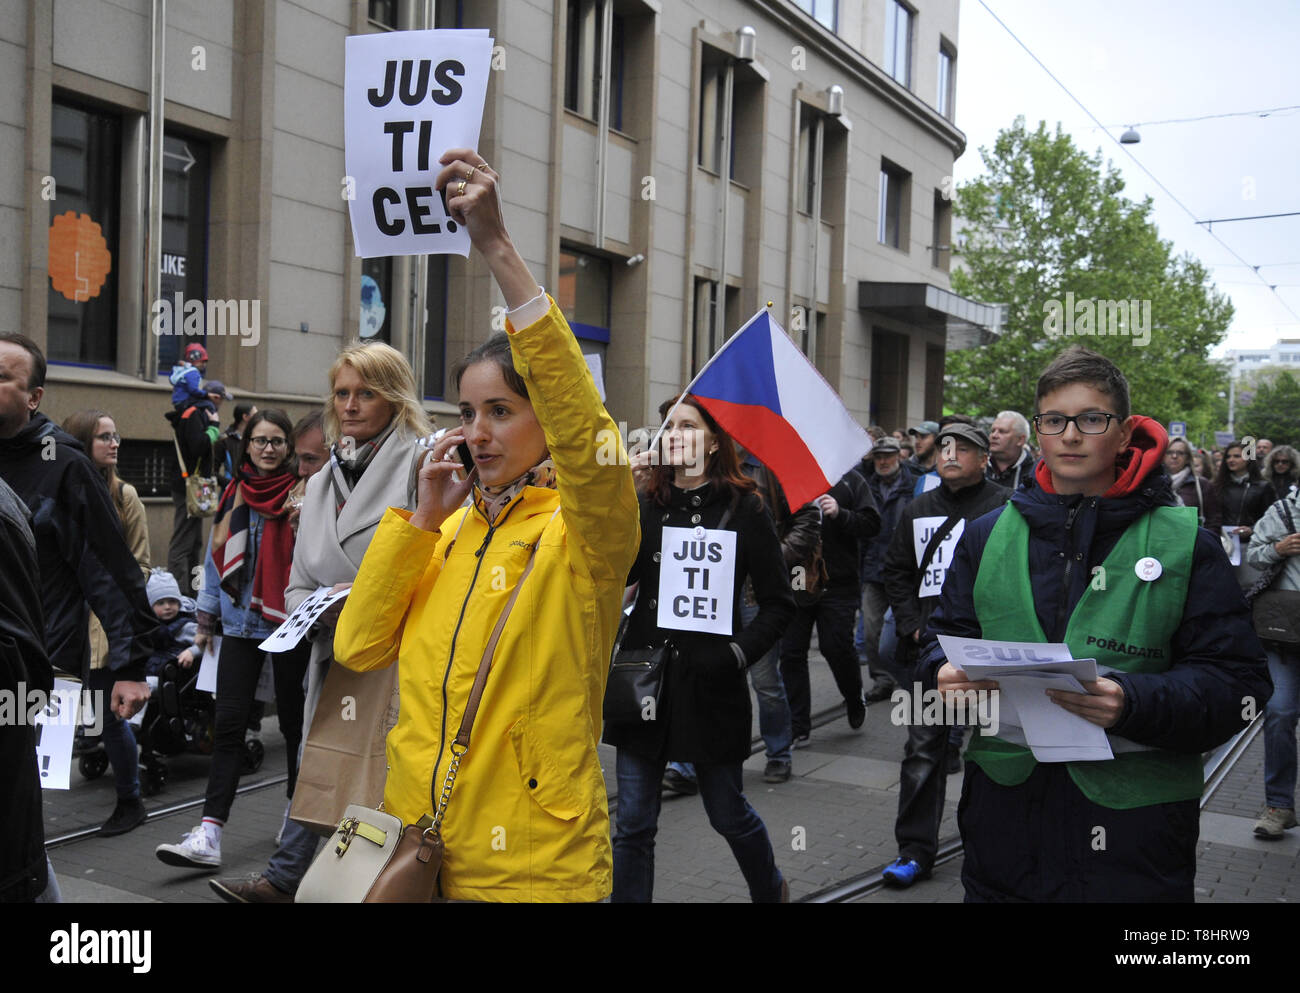 Brno, Czech Republic. 13th May, 2019. People attend third demonstration against PM Babis and new Justice Minister Benesova in the centre of Brno, Czech Republic, May 13, 2019. Credit: Igor Zehl/CTK Photo/Alamy Live News Stock Photo